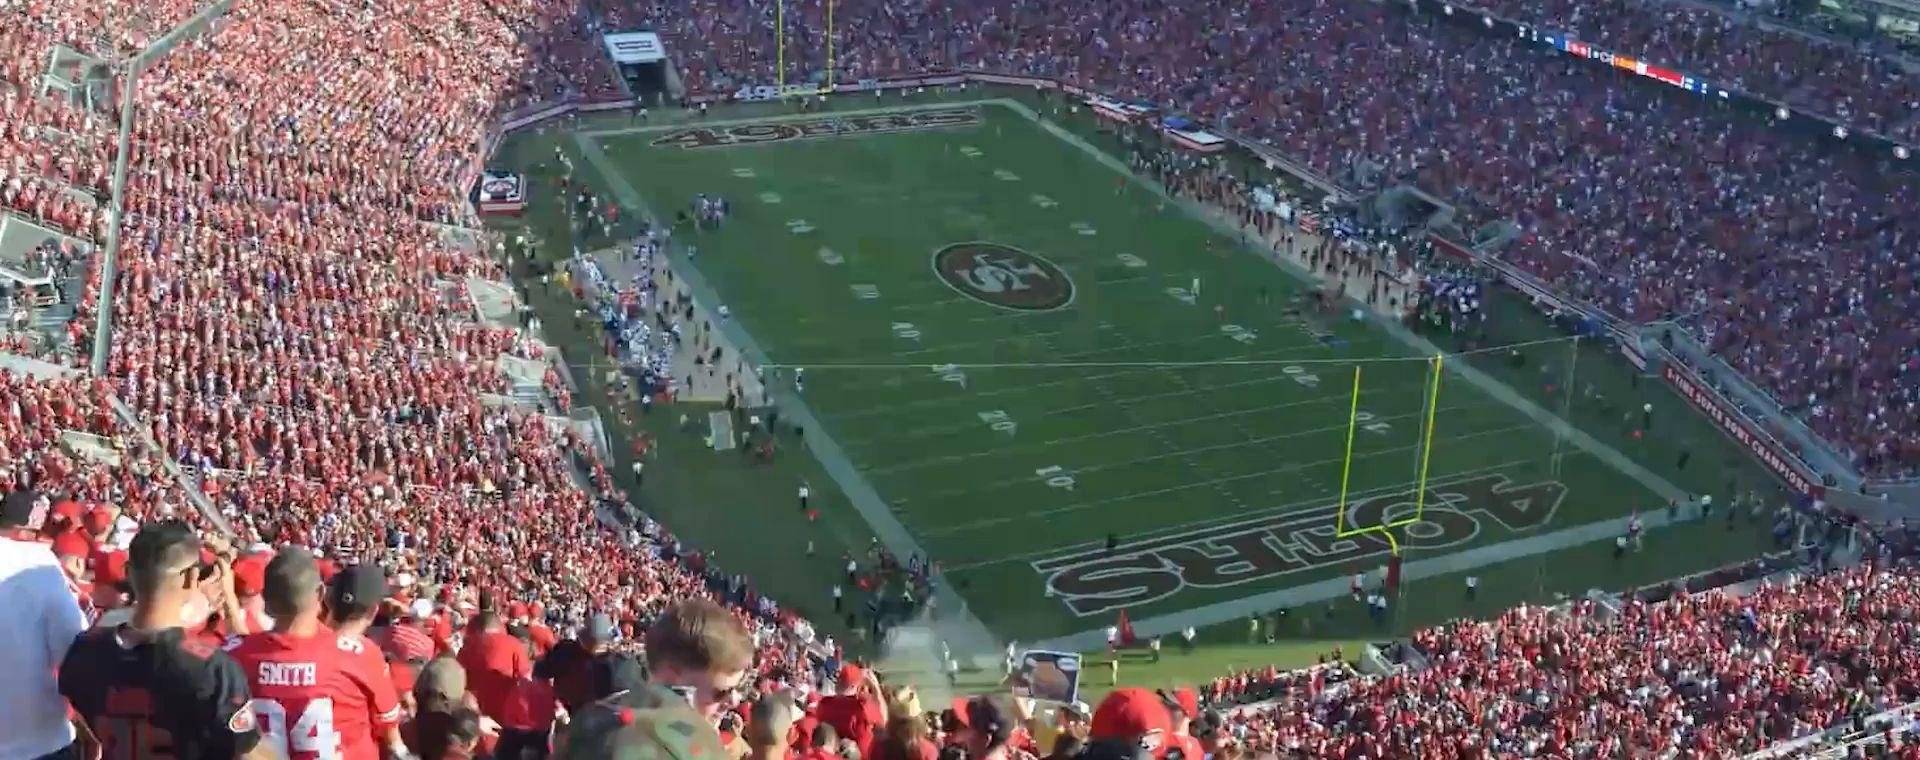 What is San Francisco 49ers?